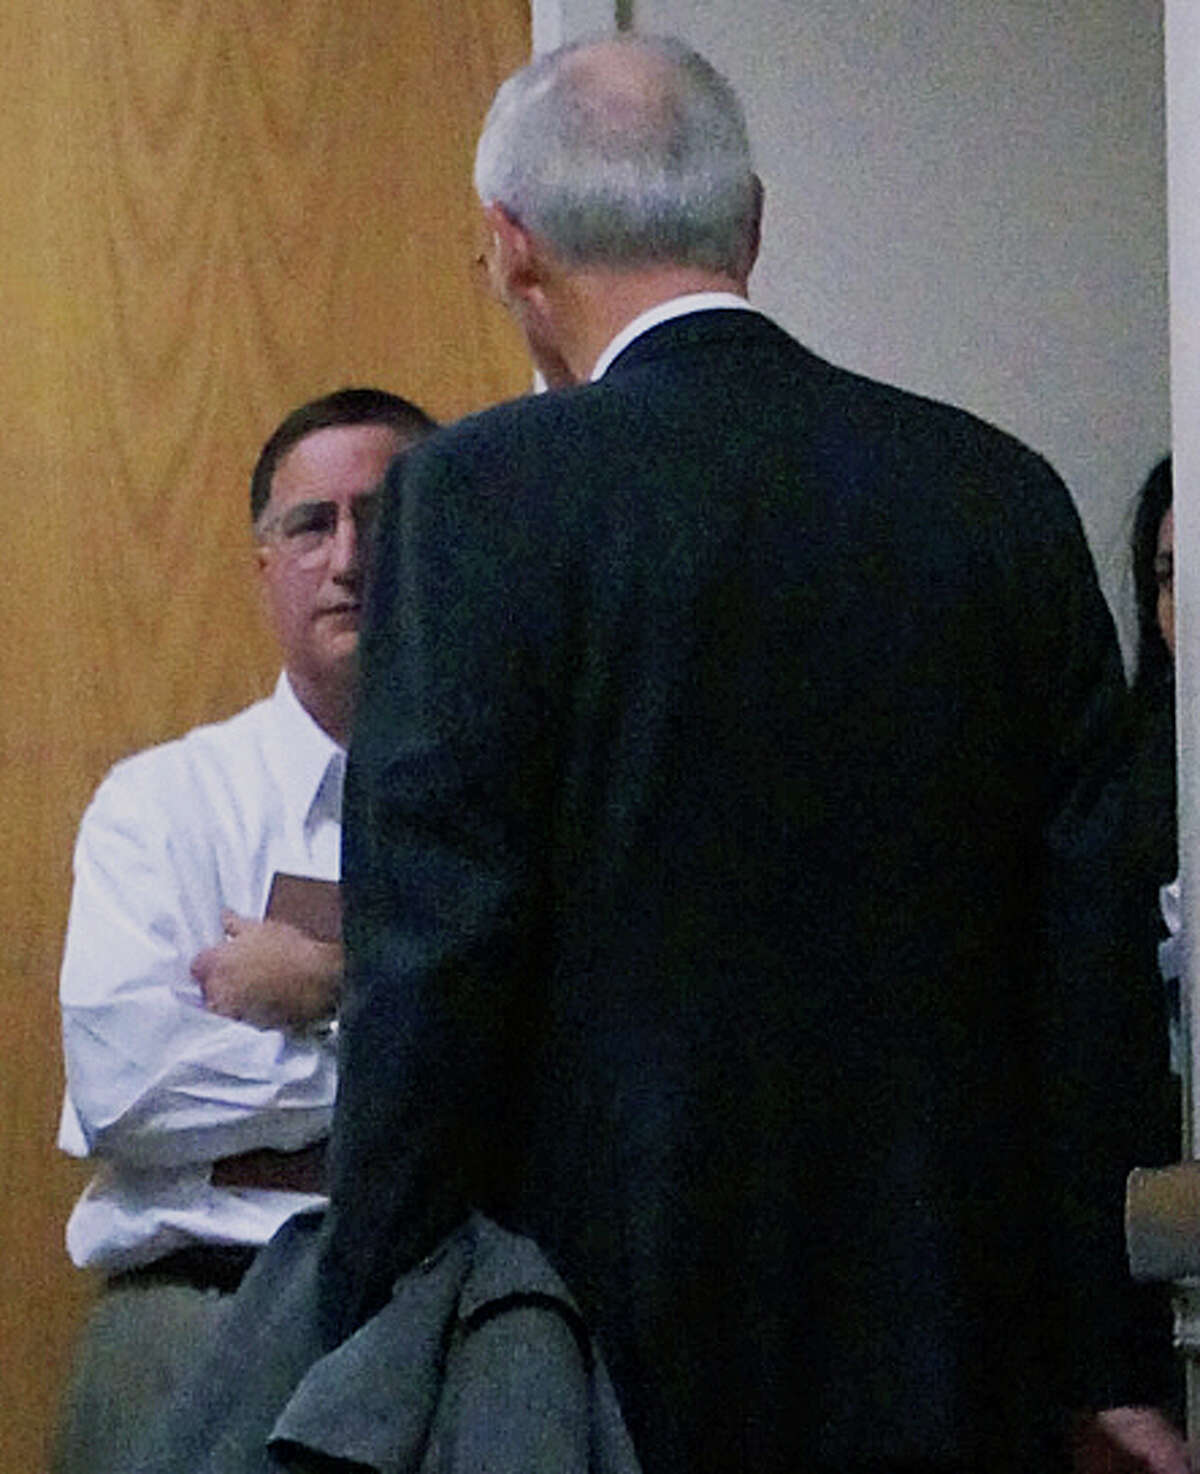 Supt. of Schools David Title, facing camera, huddles in the hallway with attorney Donald Houston after the Representative Town Meeting rejected a proposed contract with 38 school administrators.